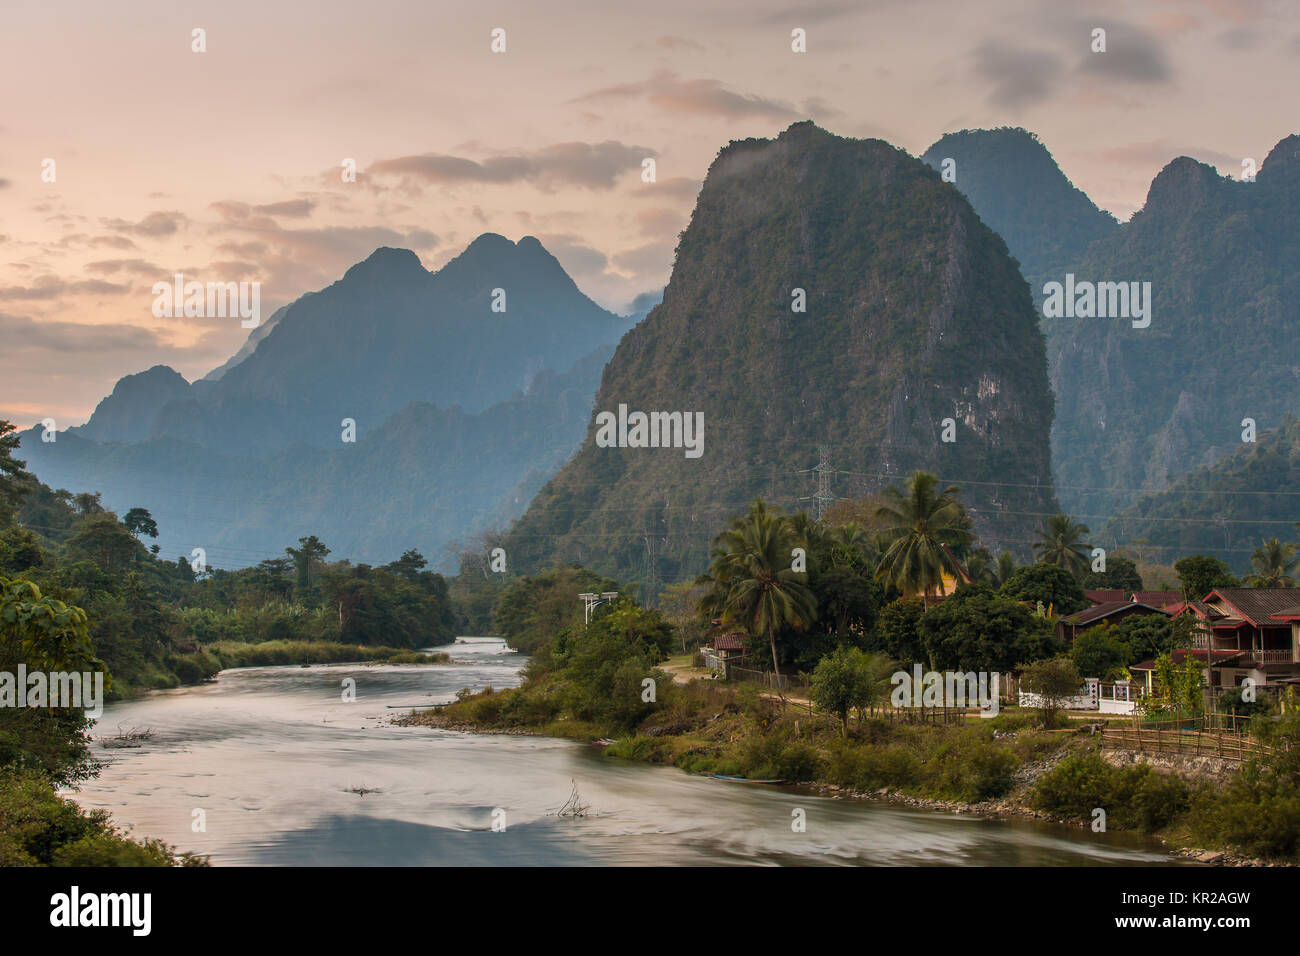 Beautiful sunrise over the Nam Song river near the Vang Vieng village, Laos Stock Photo